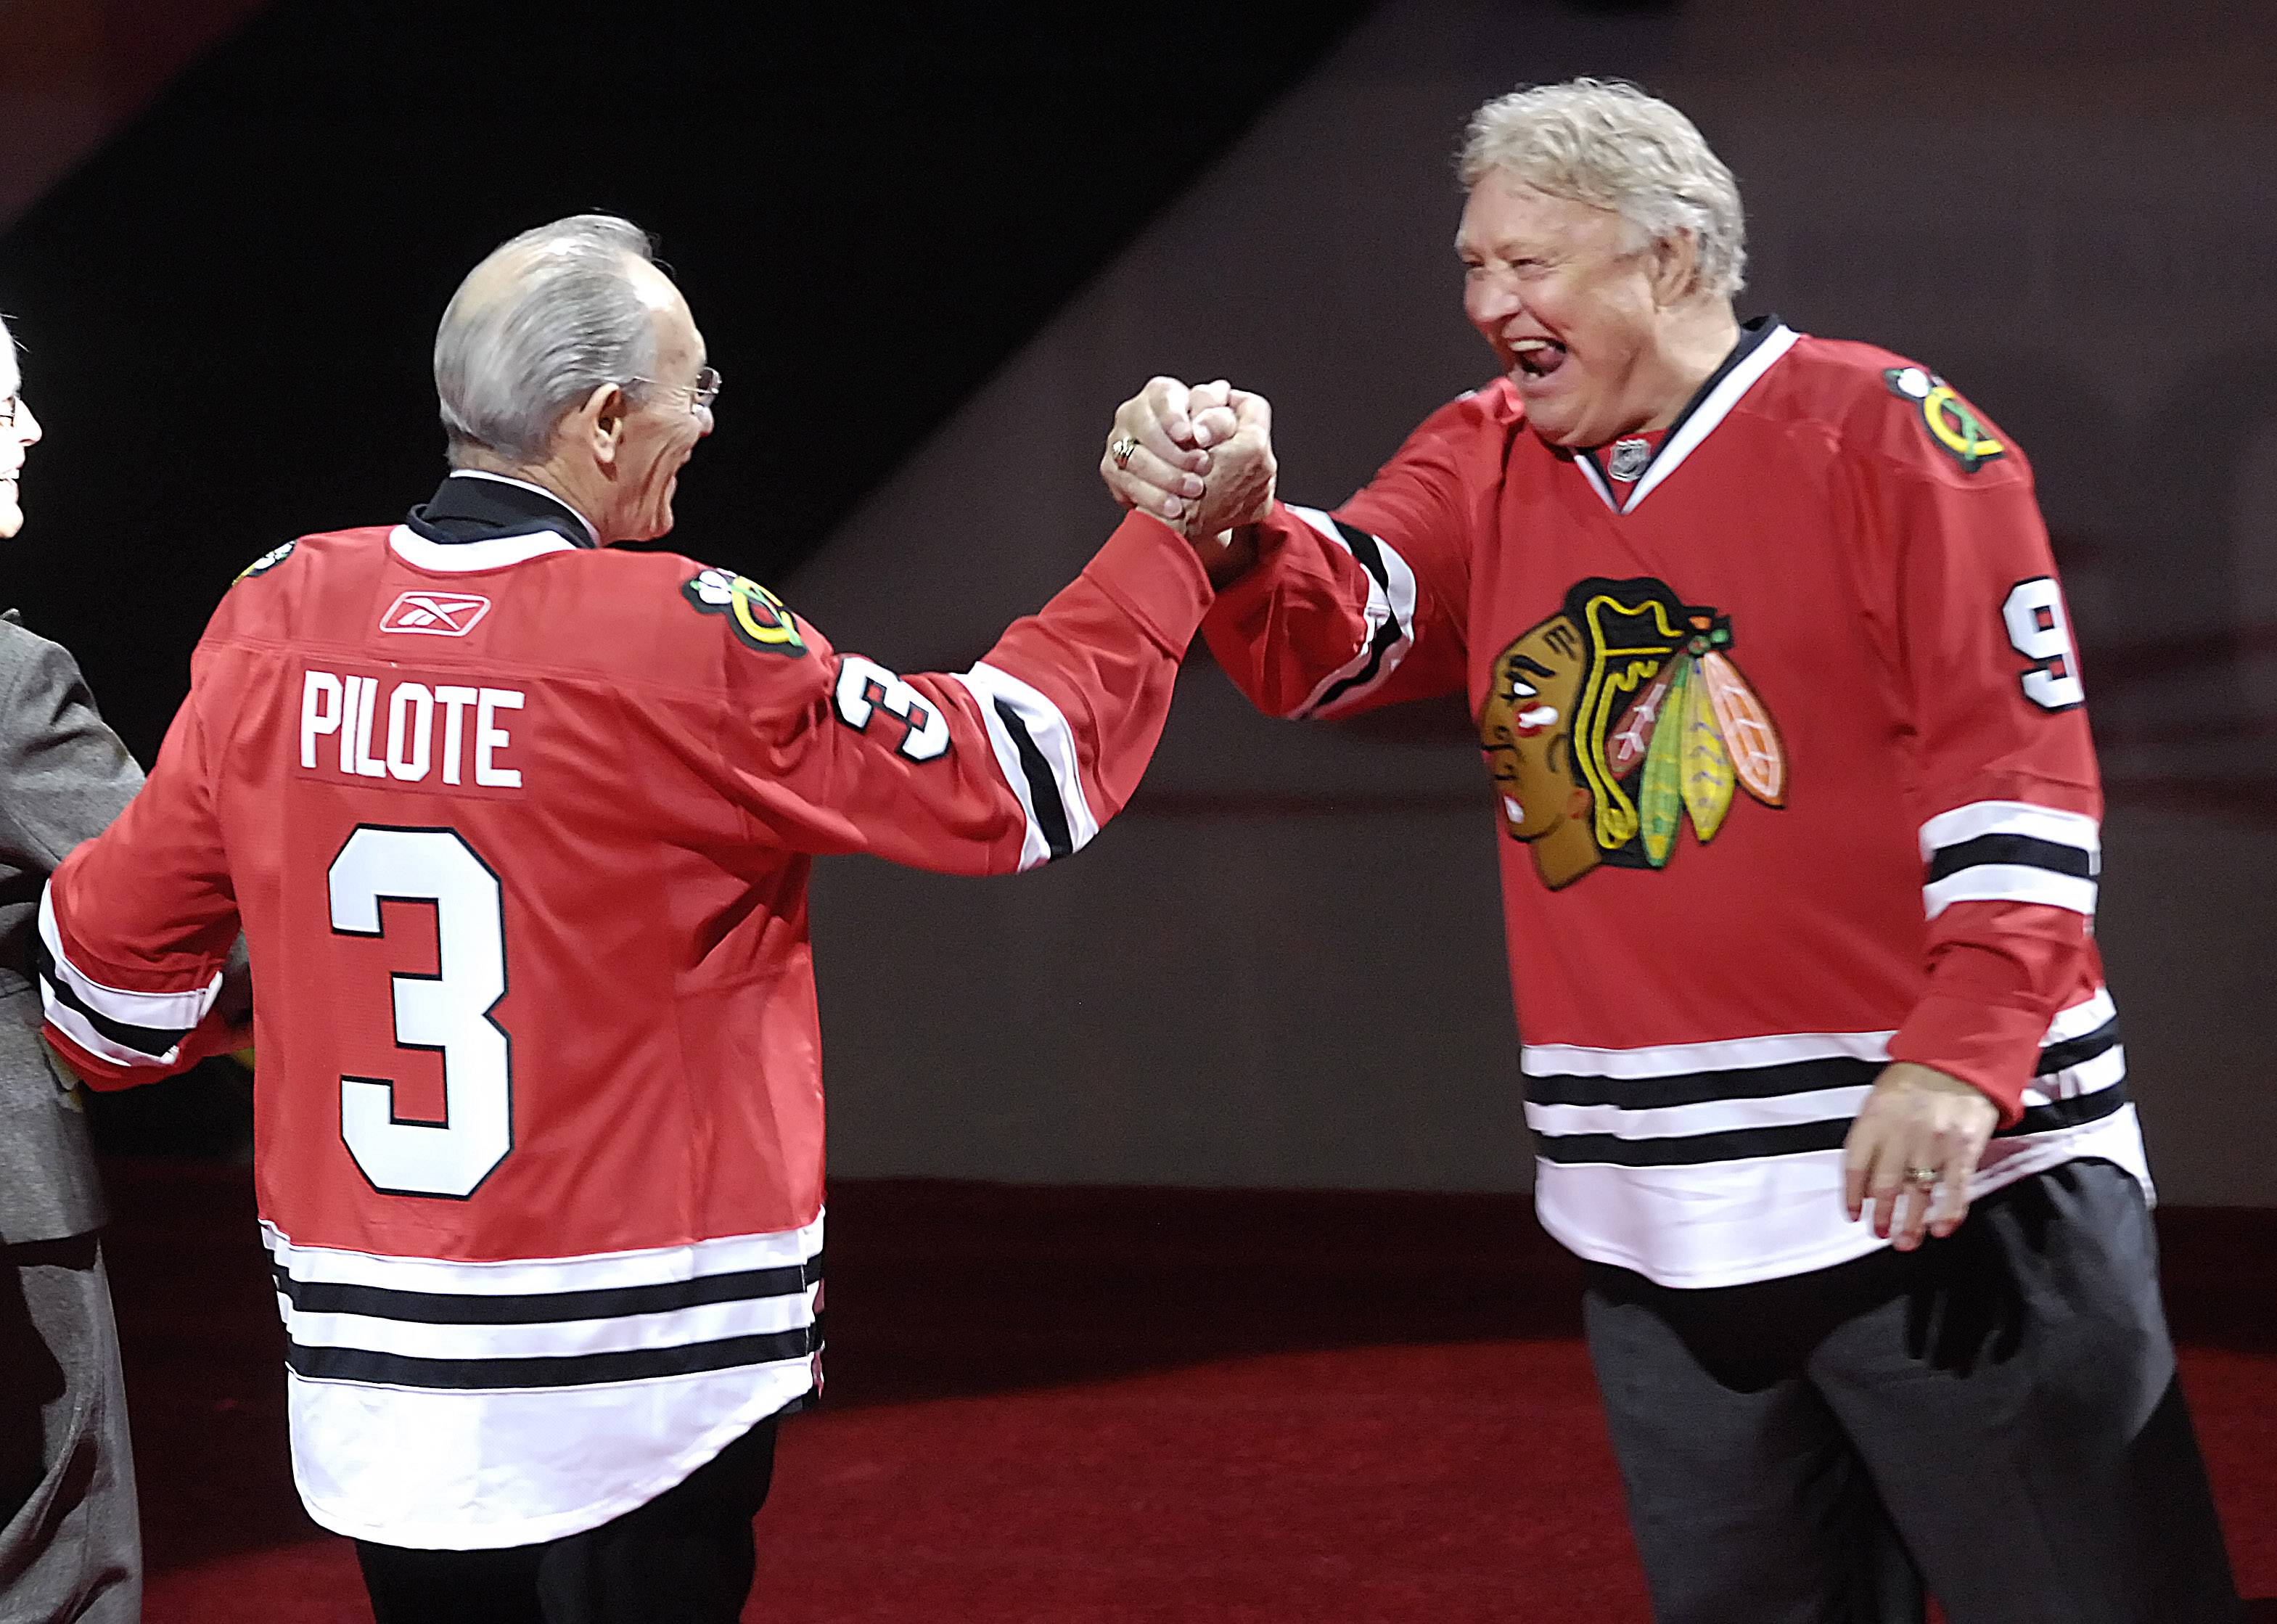 Chicago Blackhawks legend Bobby Hull greets Pierre Pilote during a number retirement ceremony for Pilote and the late Keith Magnuson before the game with the Boston Bruins Wednesday at the United Center.